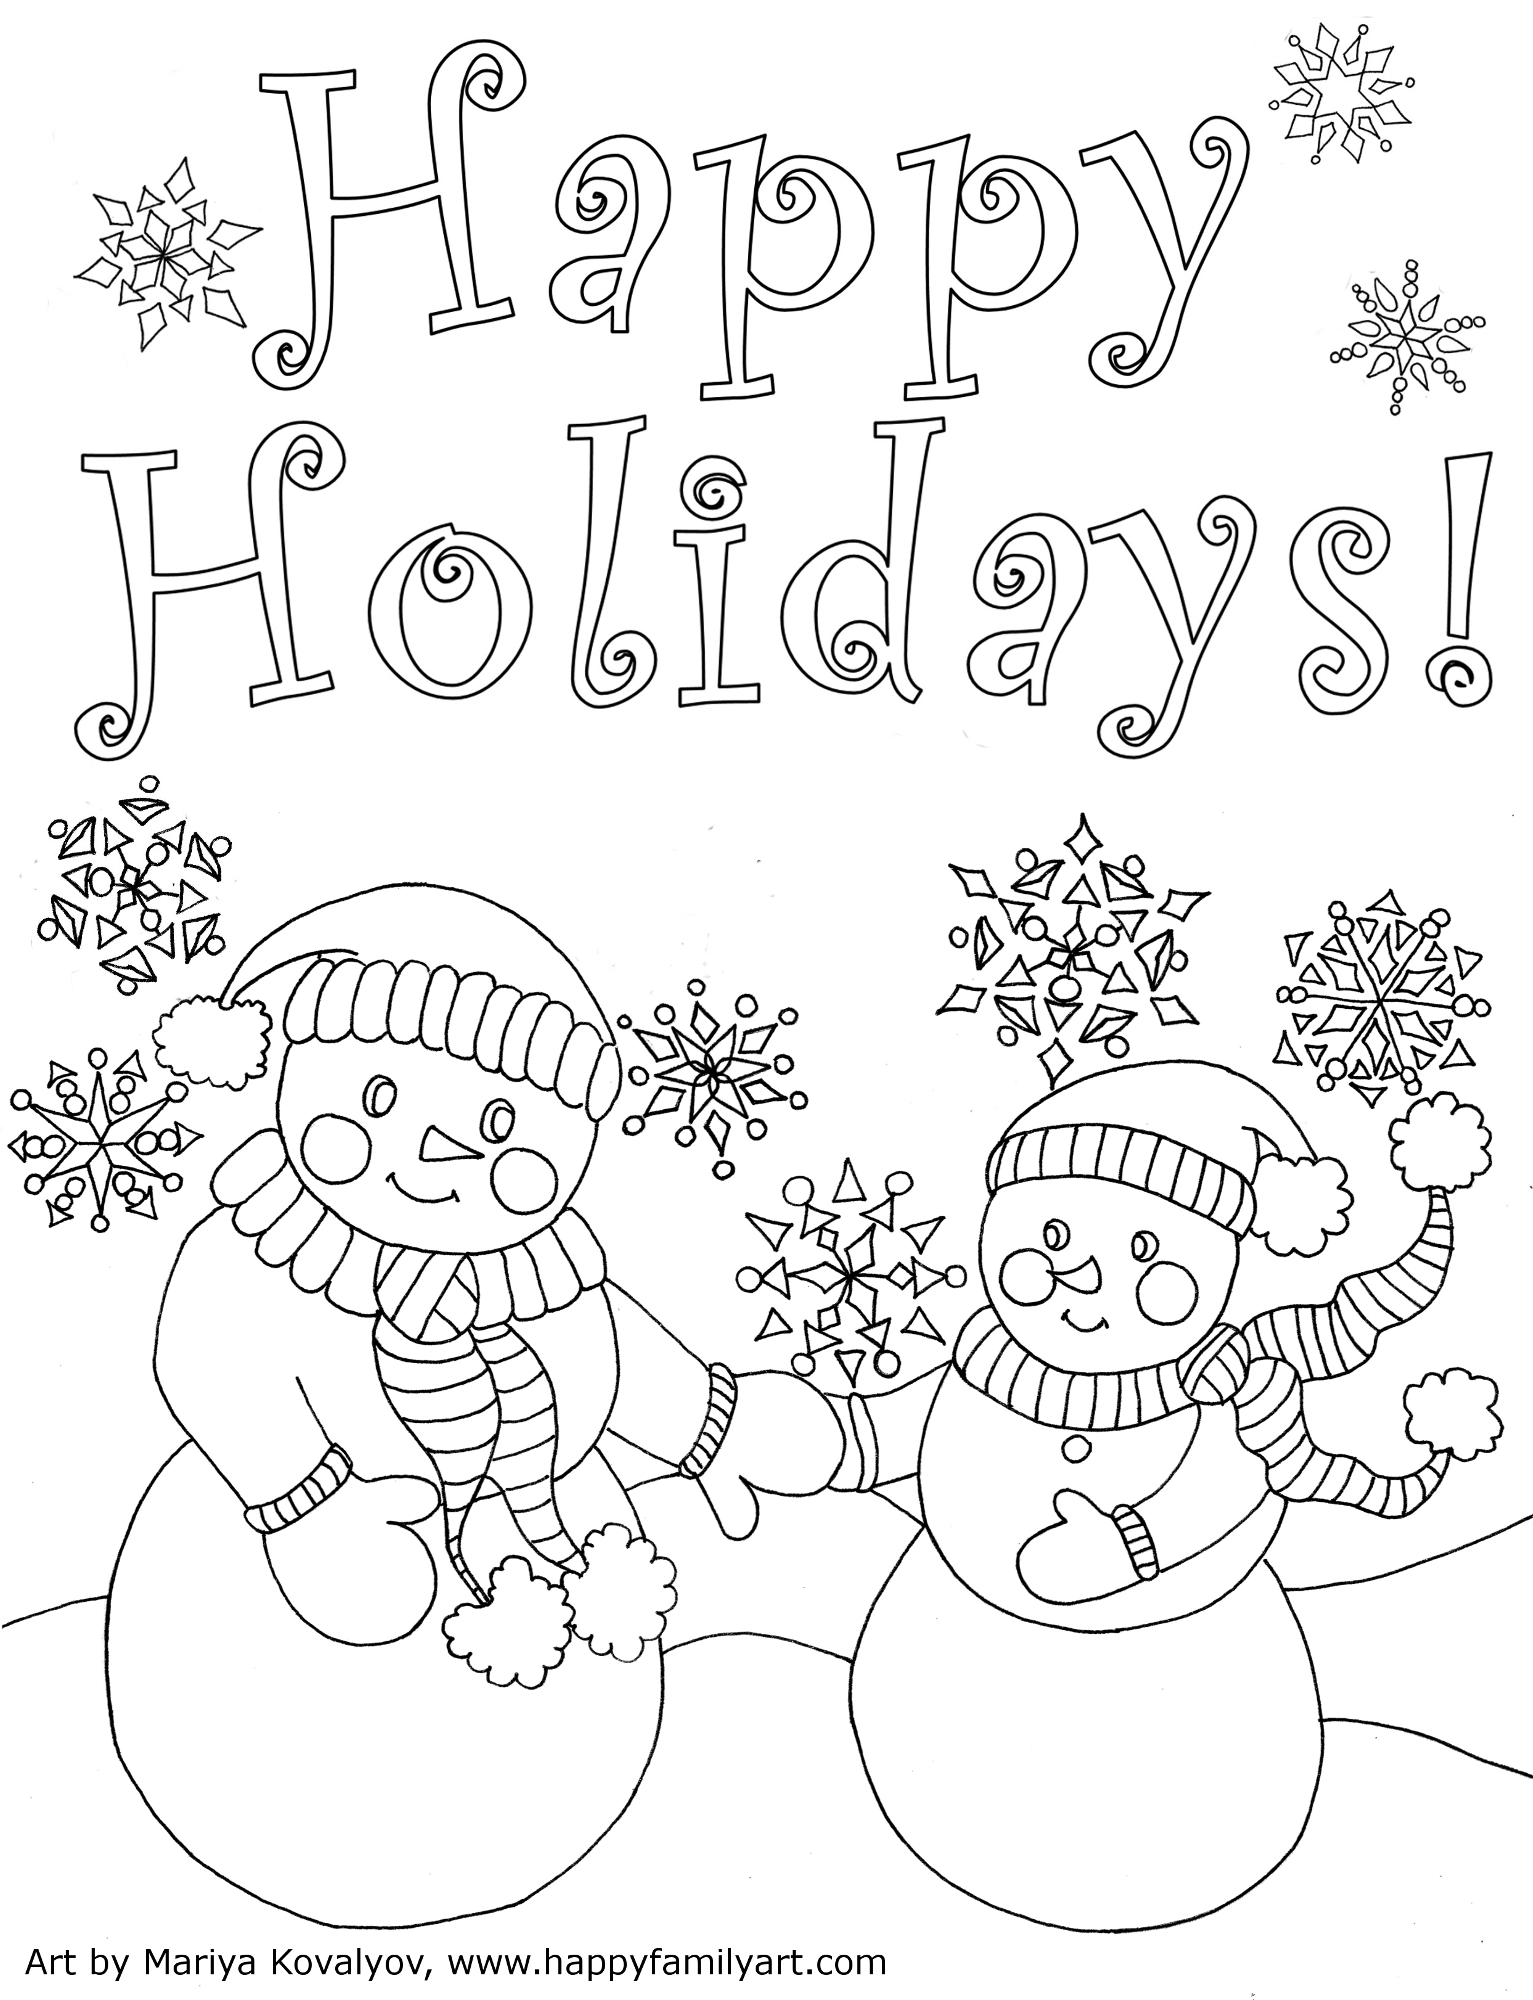 ho iday coloring pages - photo#1